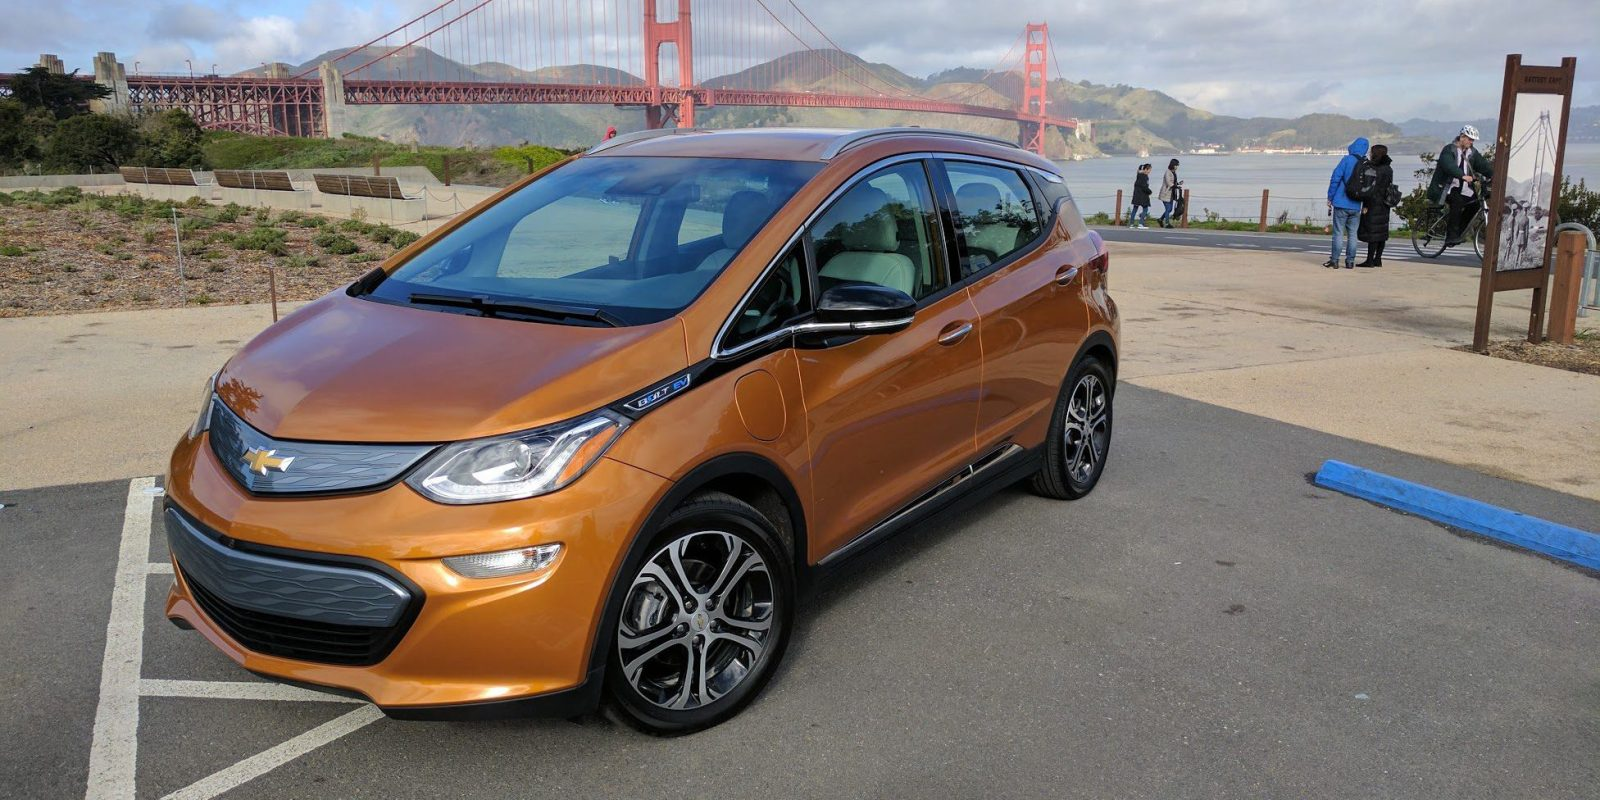 hight resolution of gm delivers record 2 000 chevy bolt evs bringing total to over 10 000 all electric cars